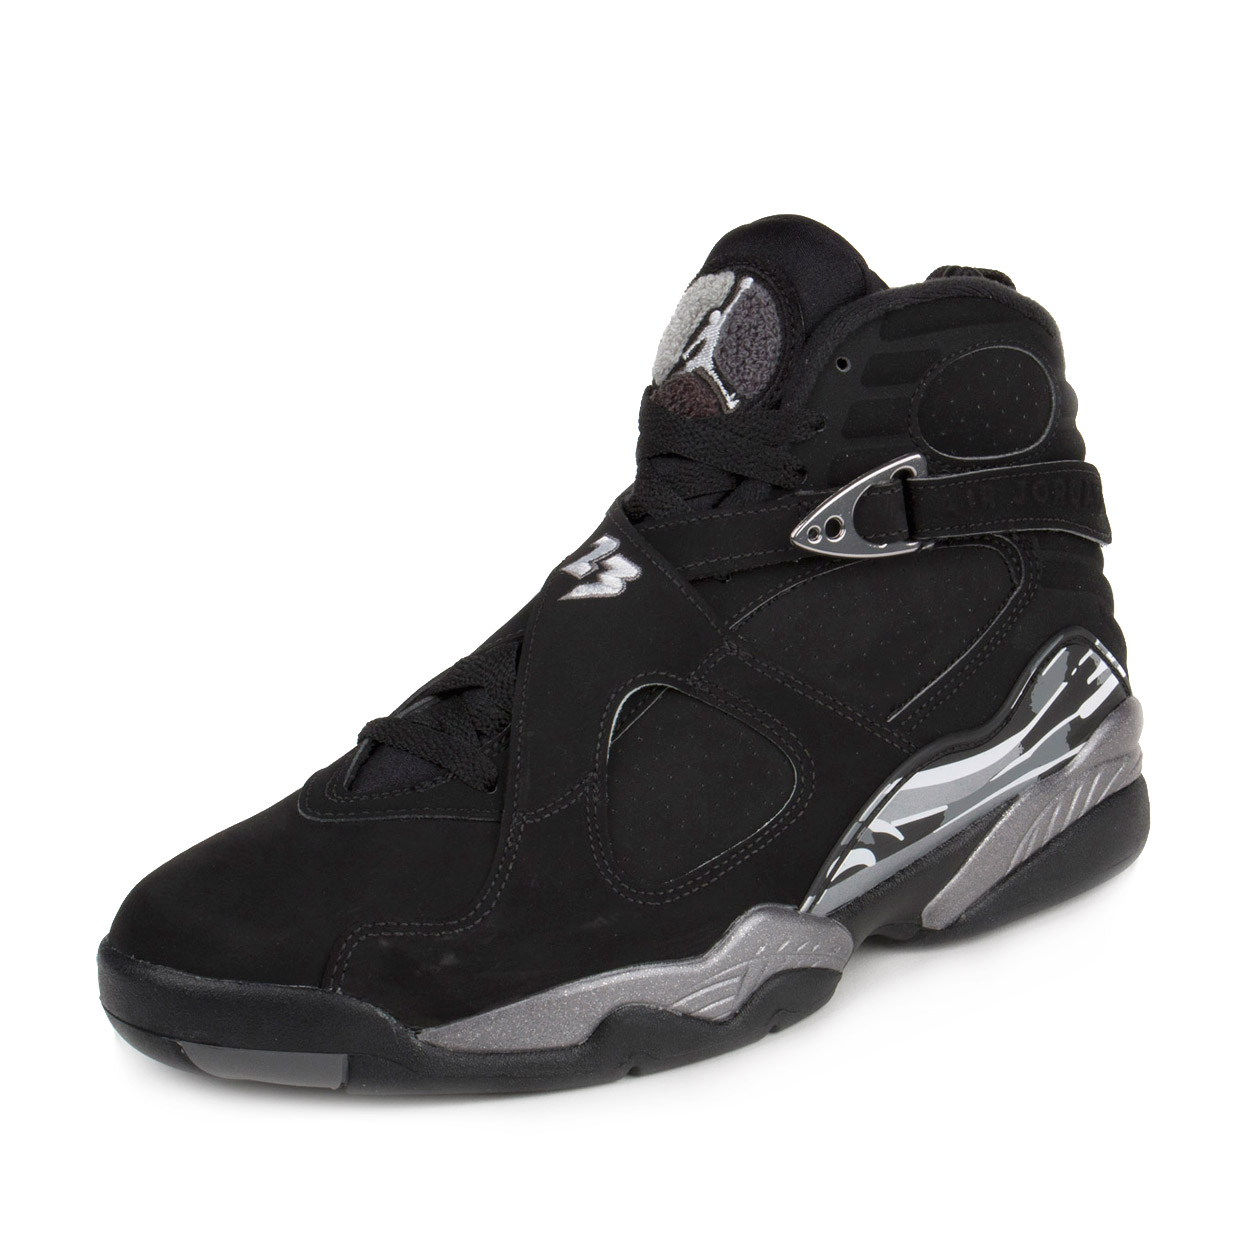 2adb62e9bb4 ... sweden nike mens air jordan 8 retro chrome black white light graphite  305381 69fac 9f3d8